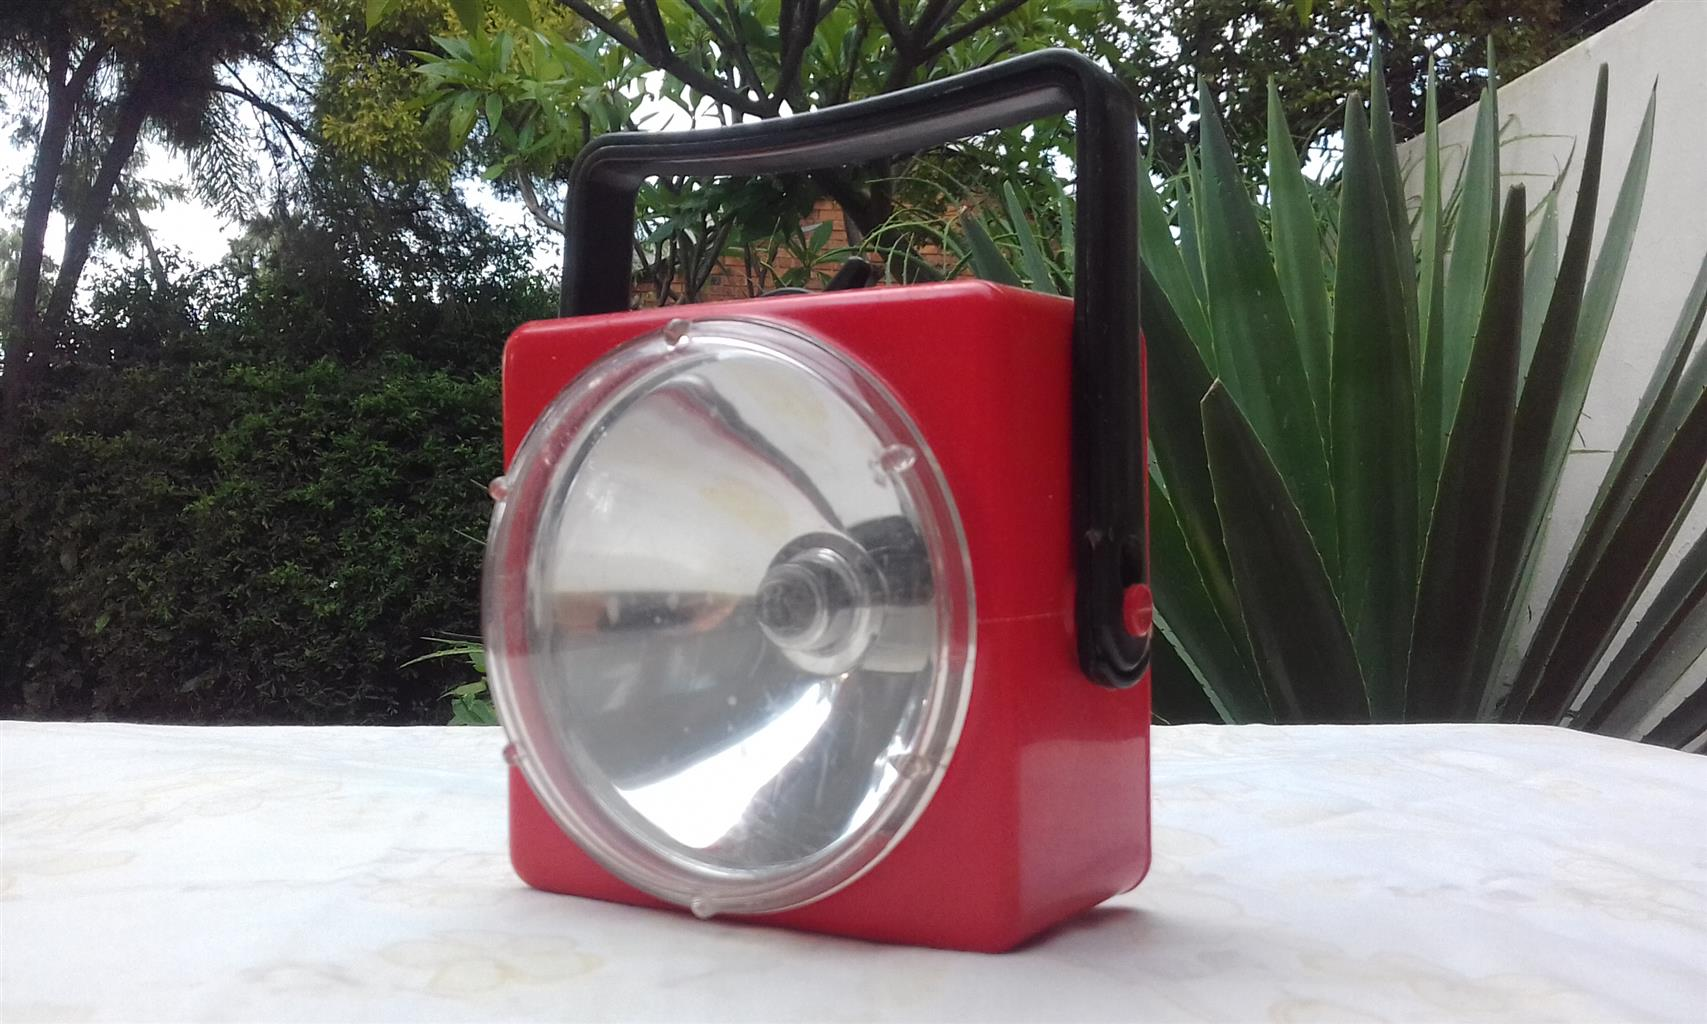 Eveready Torch for Sale